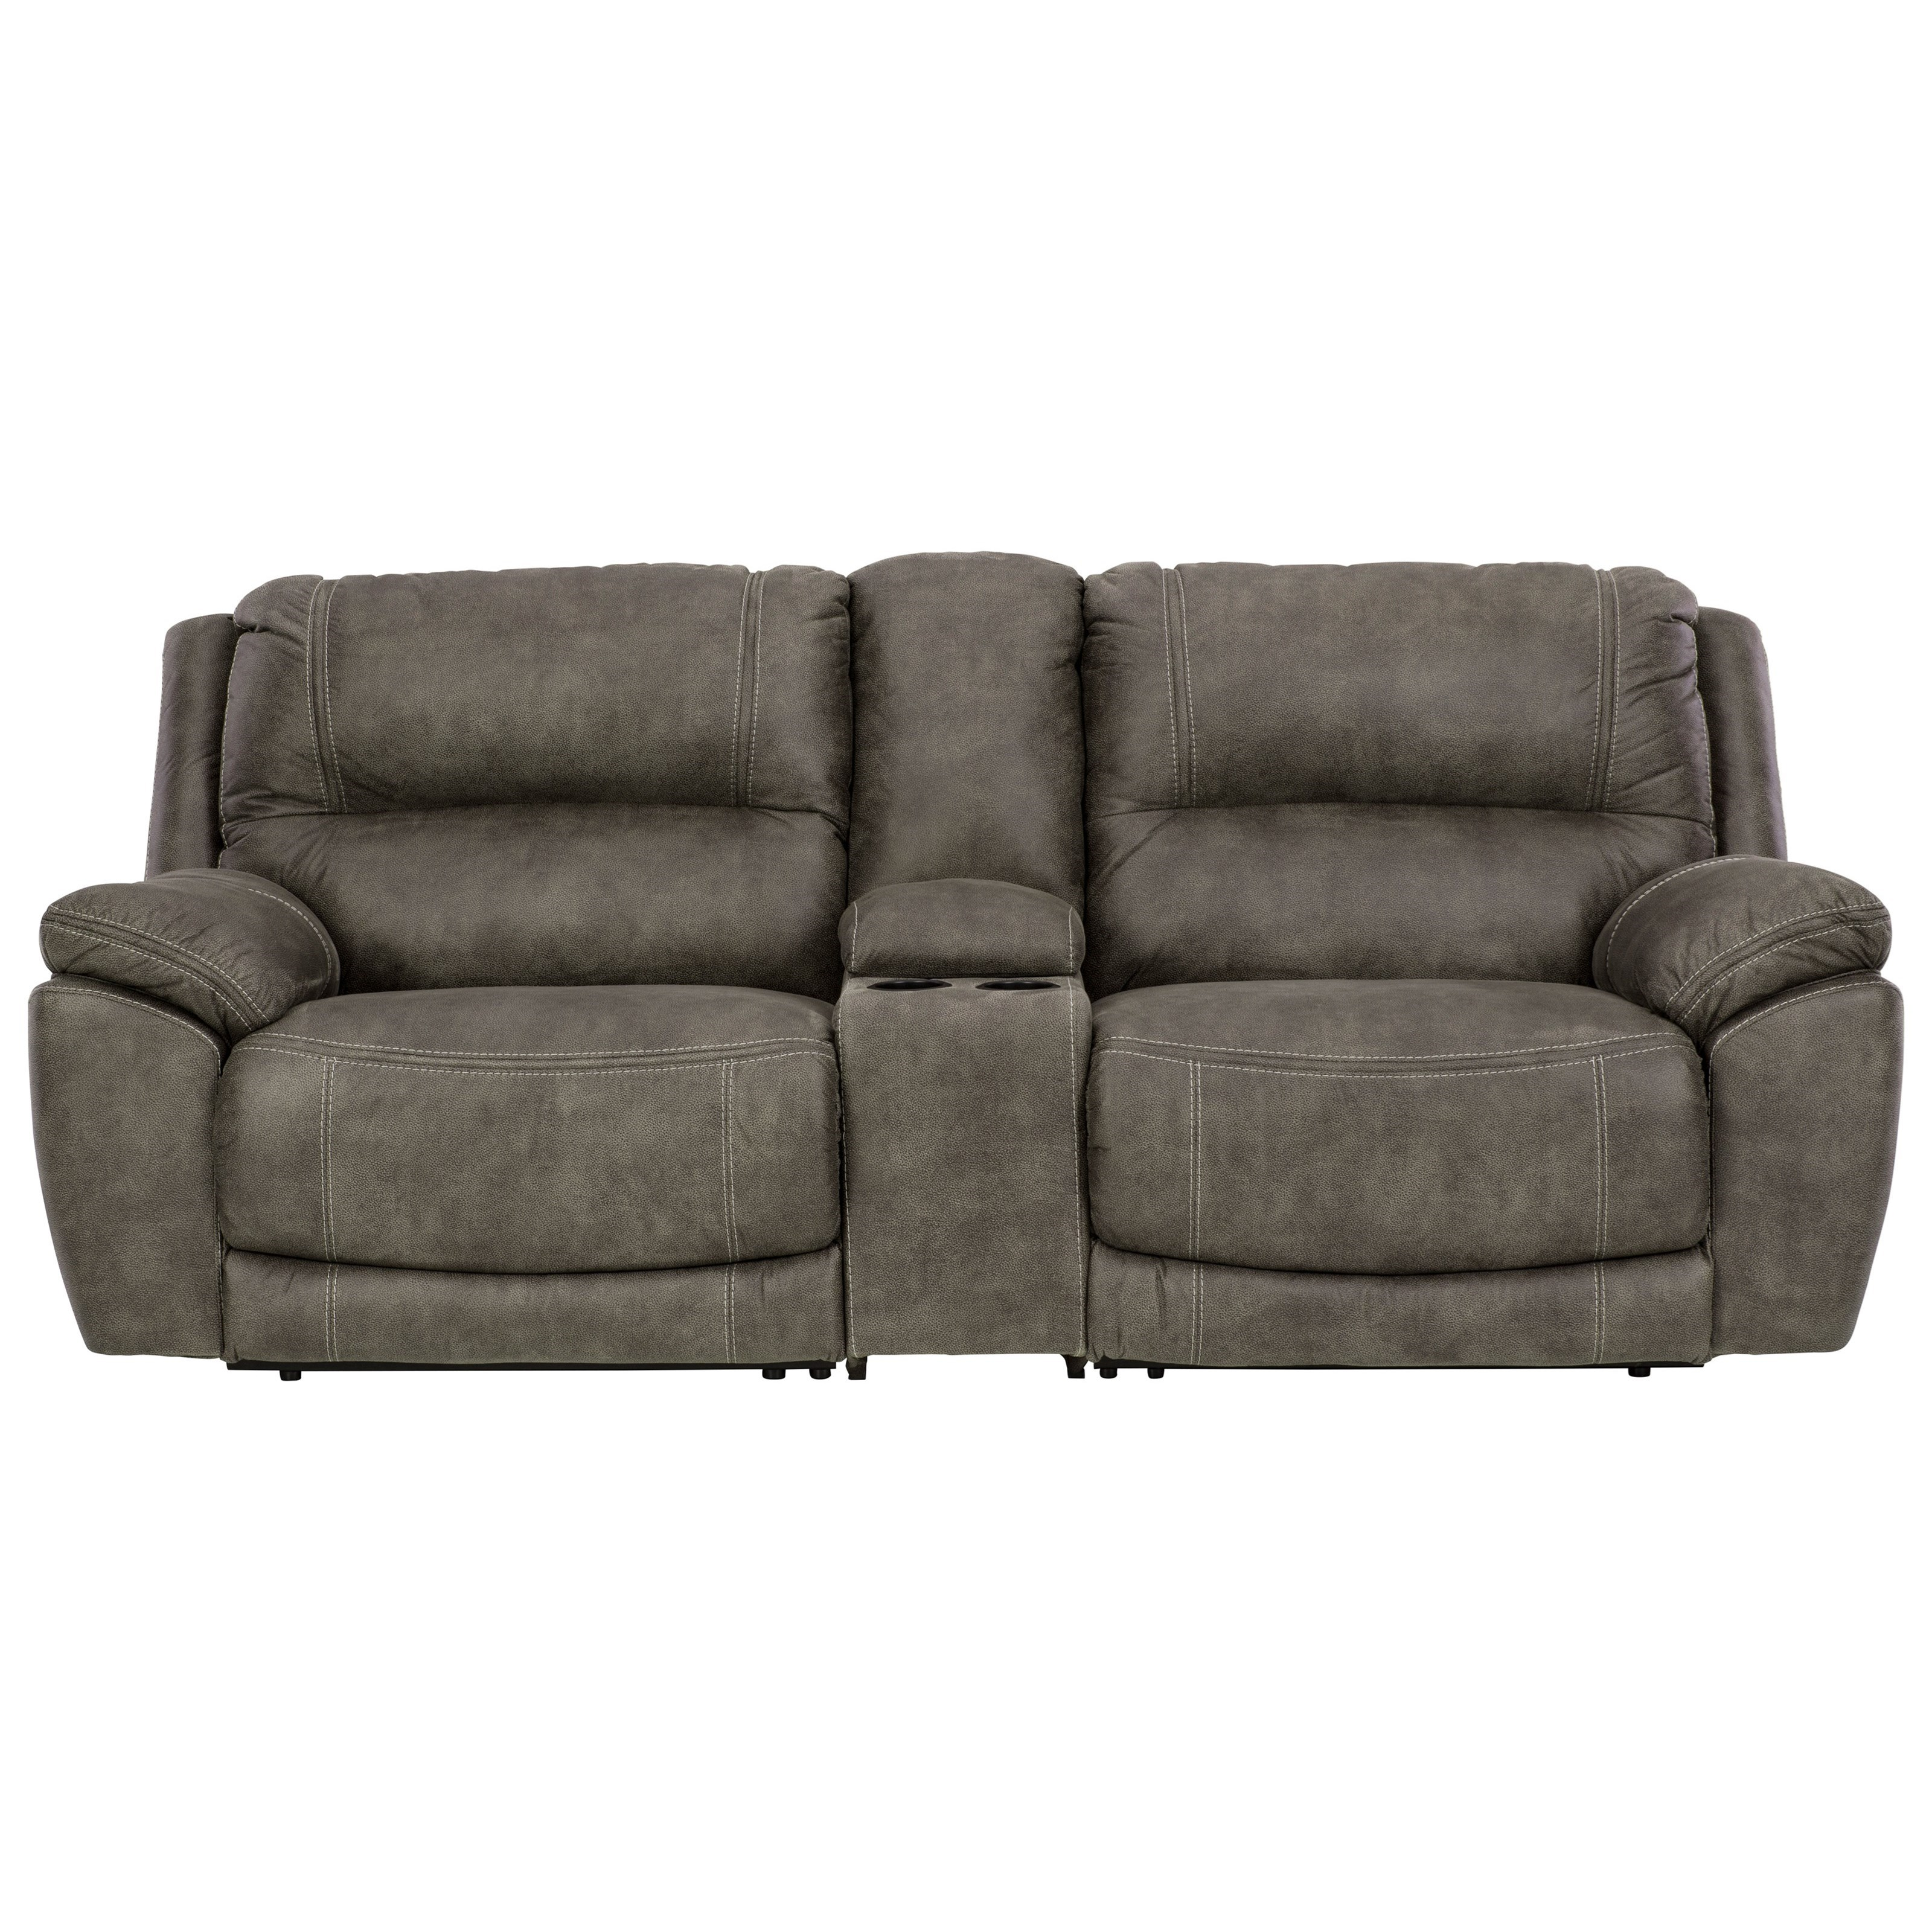 Cranedall Power Reclining Loveseat w/ Console by Signature Design by Ashley at Northeast Factory Direct